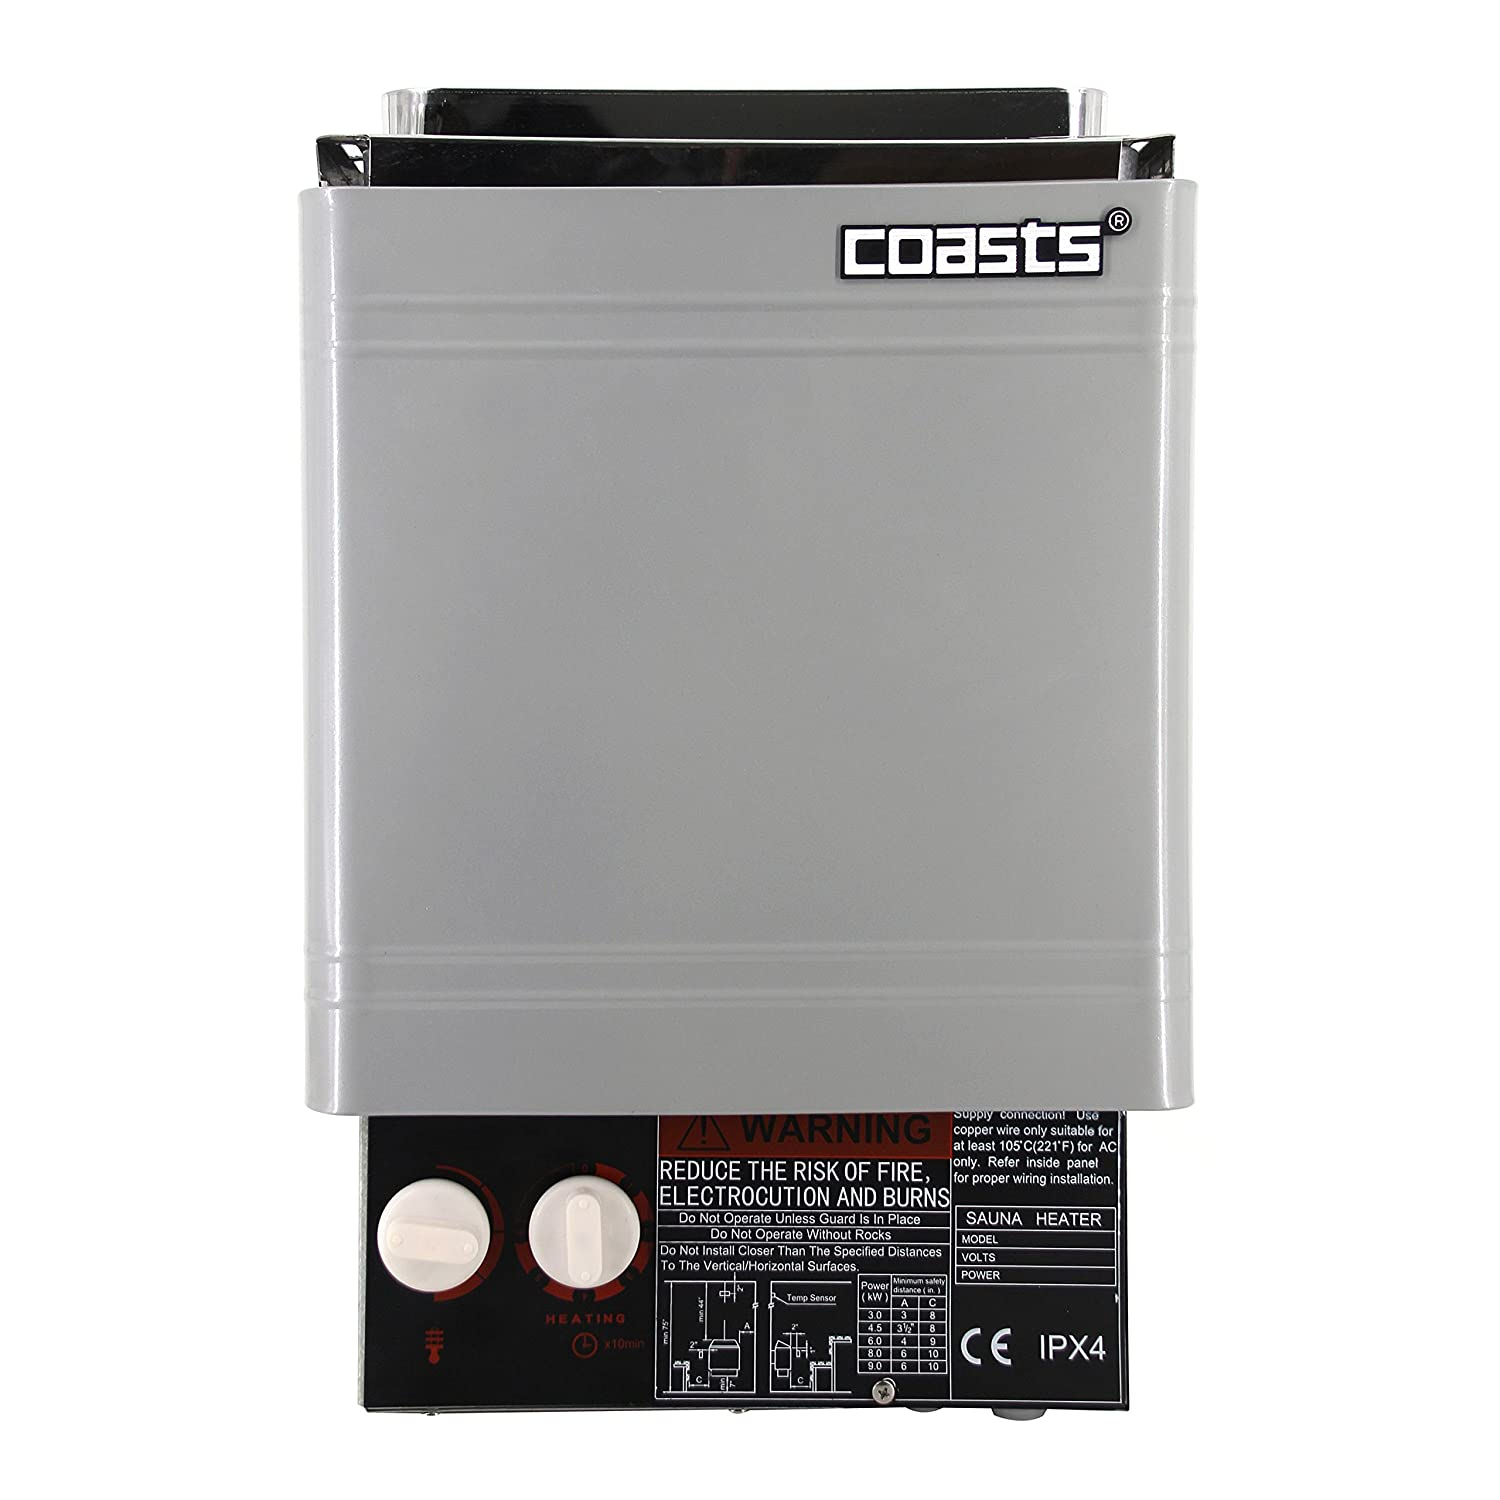 Coasts AM30A 3 kW Wet and Dry Sauna Heater Stove for Spa Sauna Room